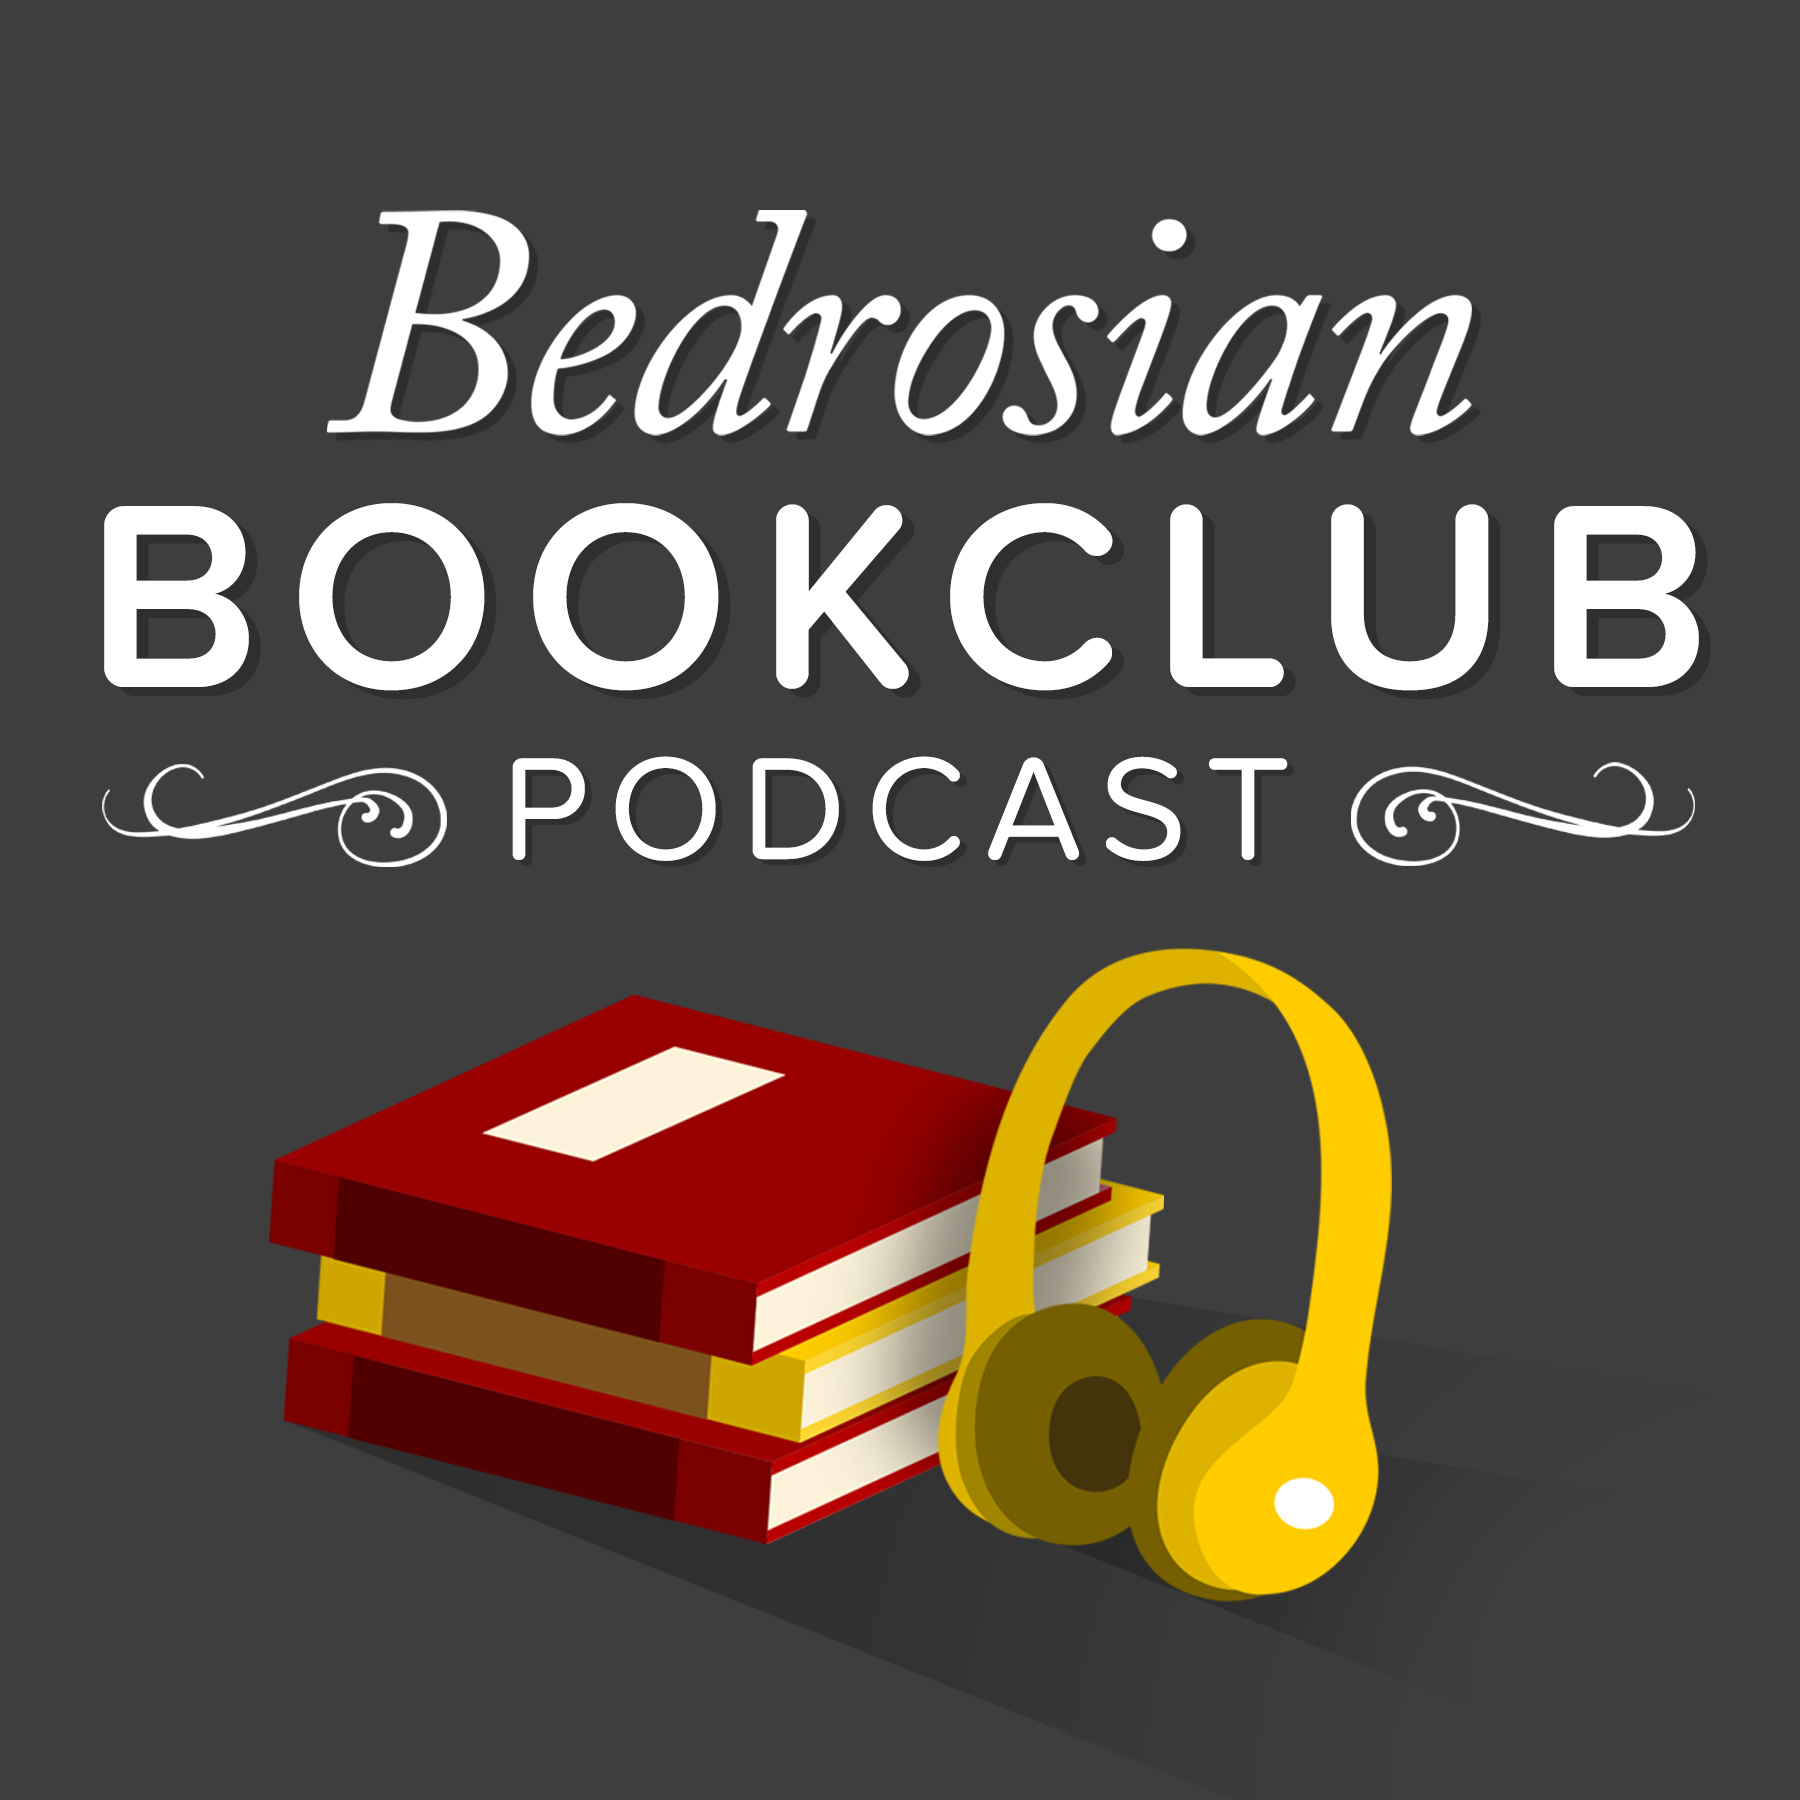 Bedrosian Bookclub Podcast show art